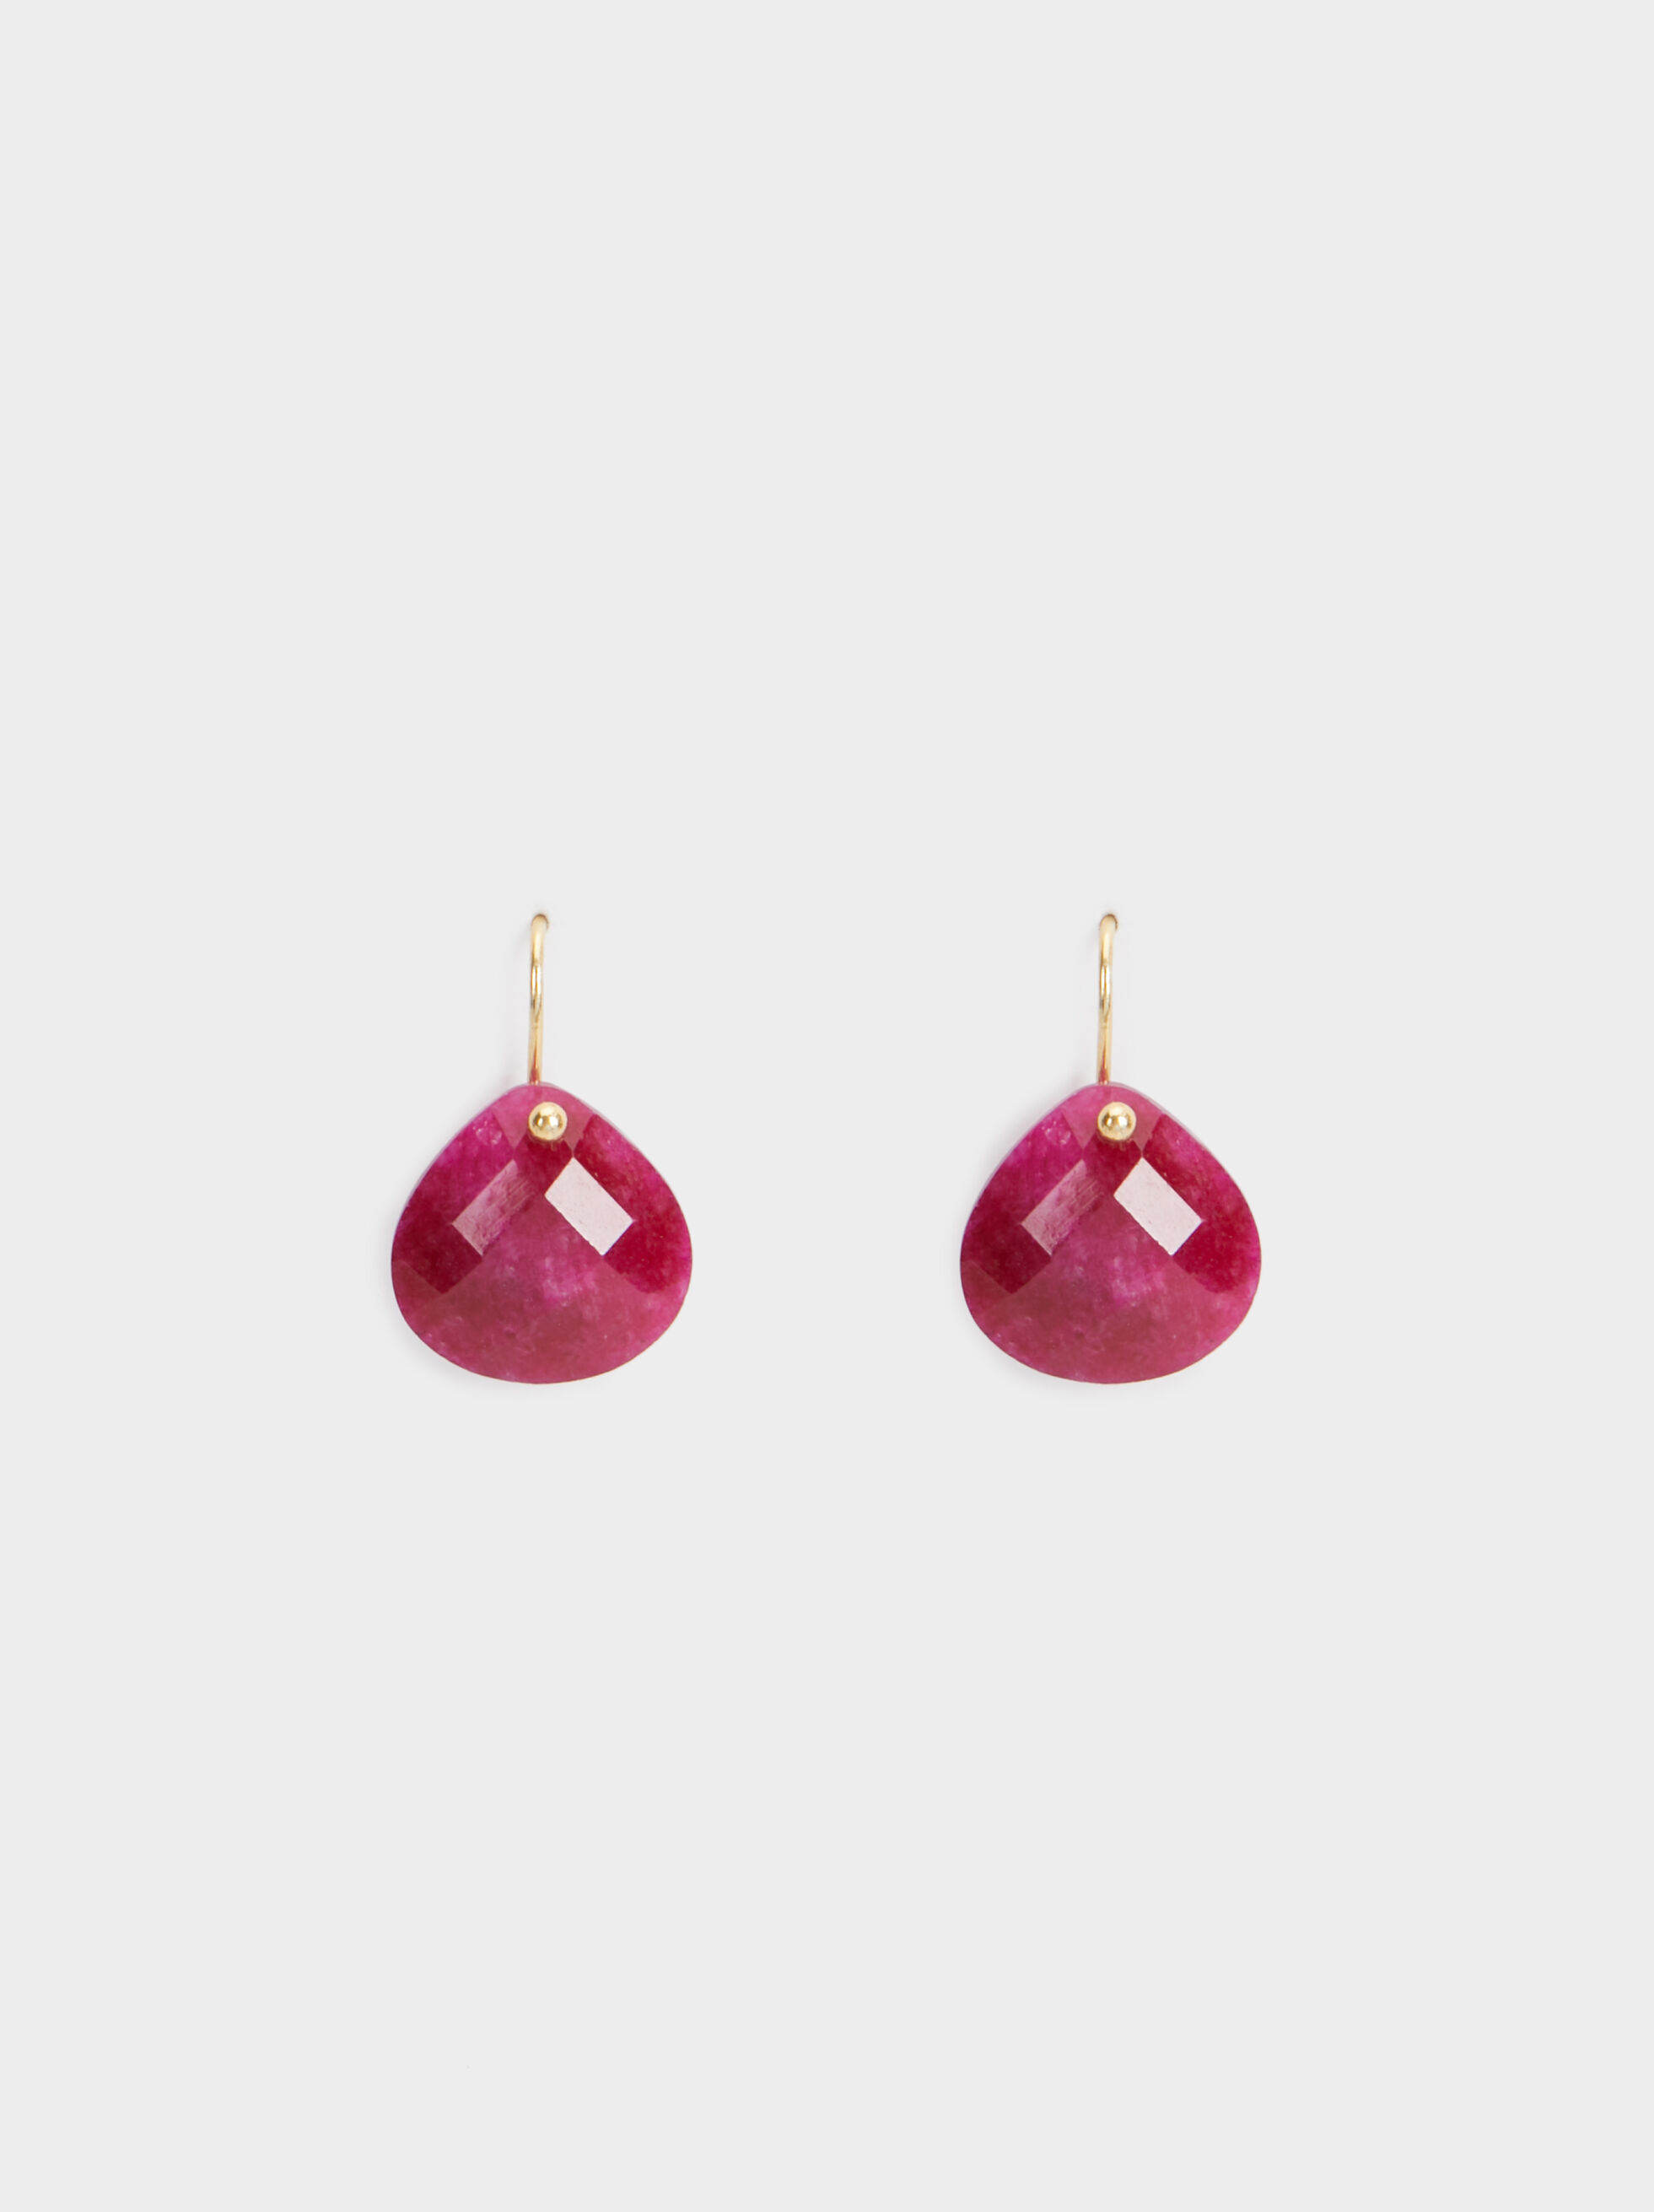 Short 925 Silver Stone Earrings, Pink, hi-res